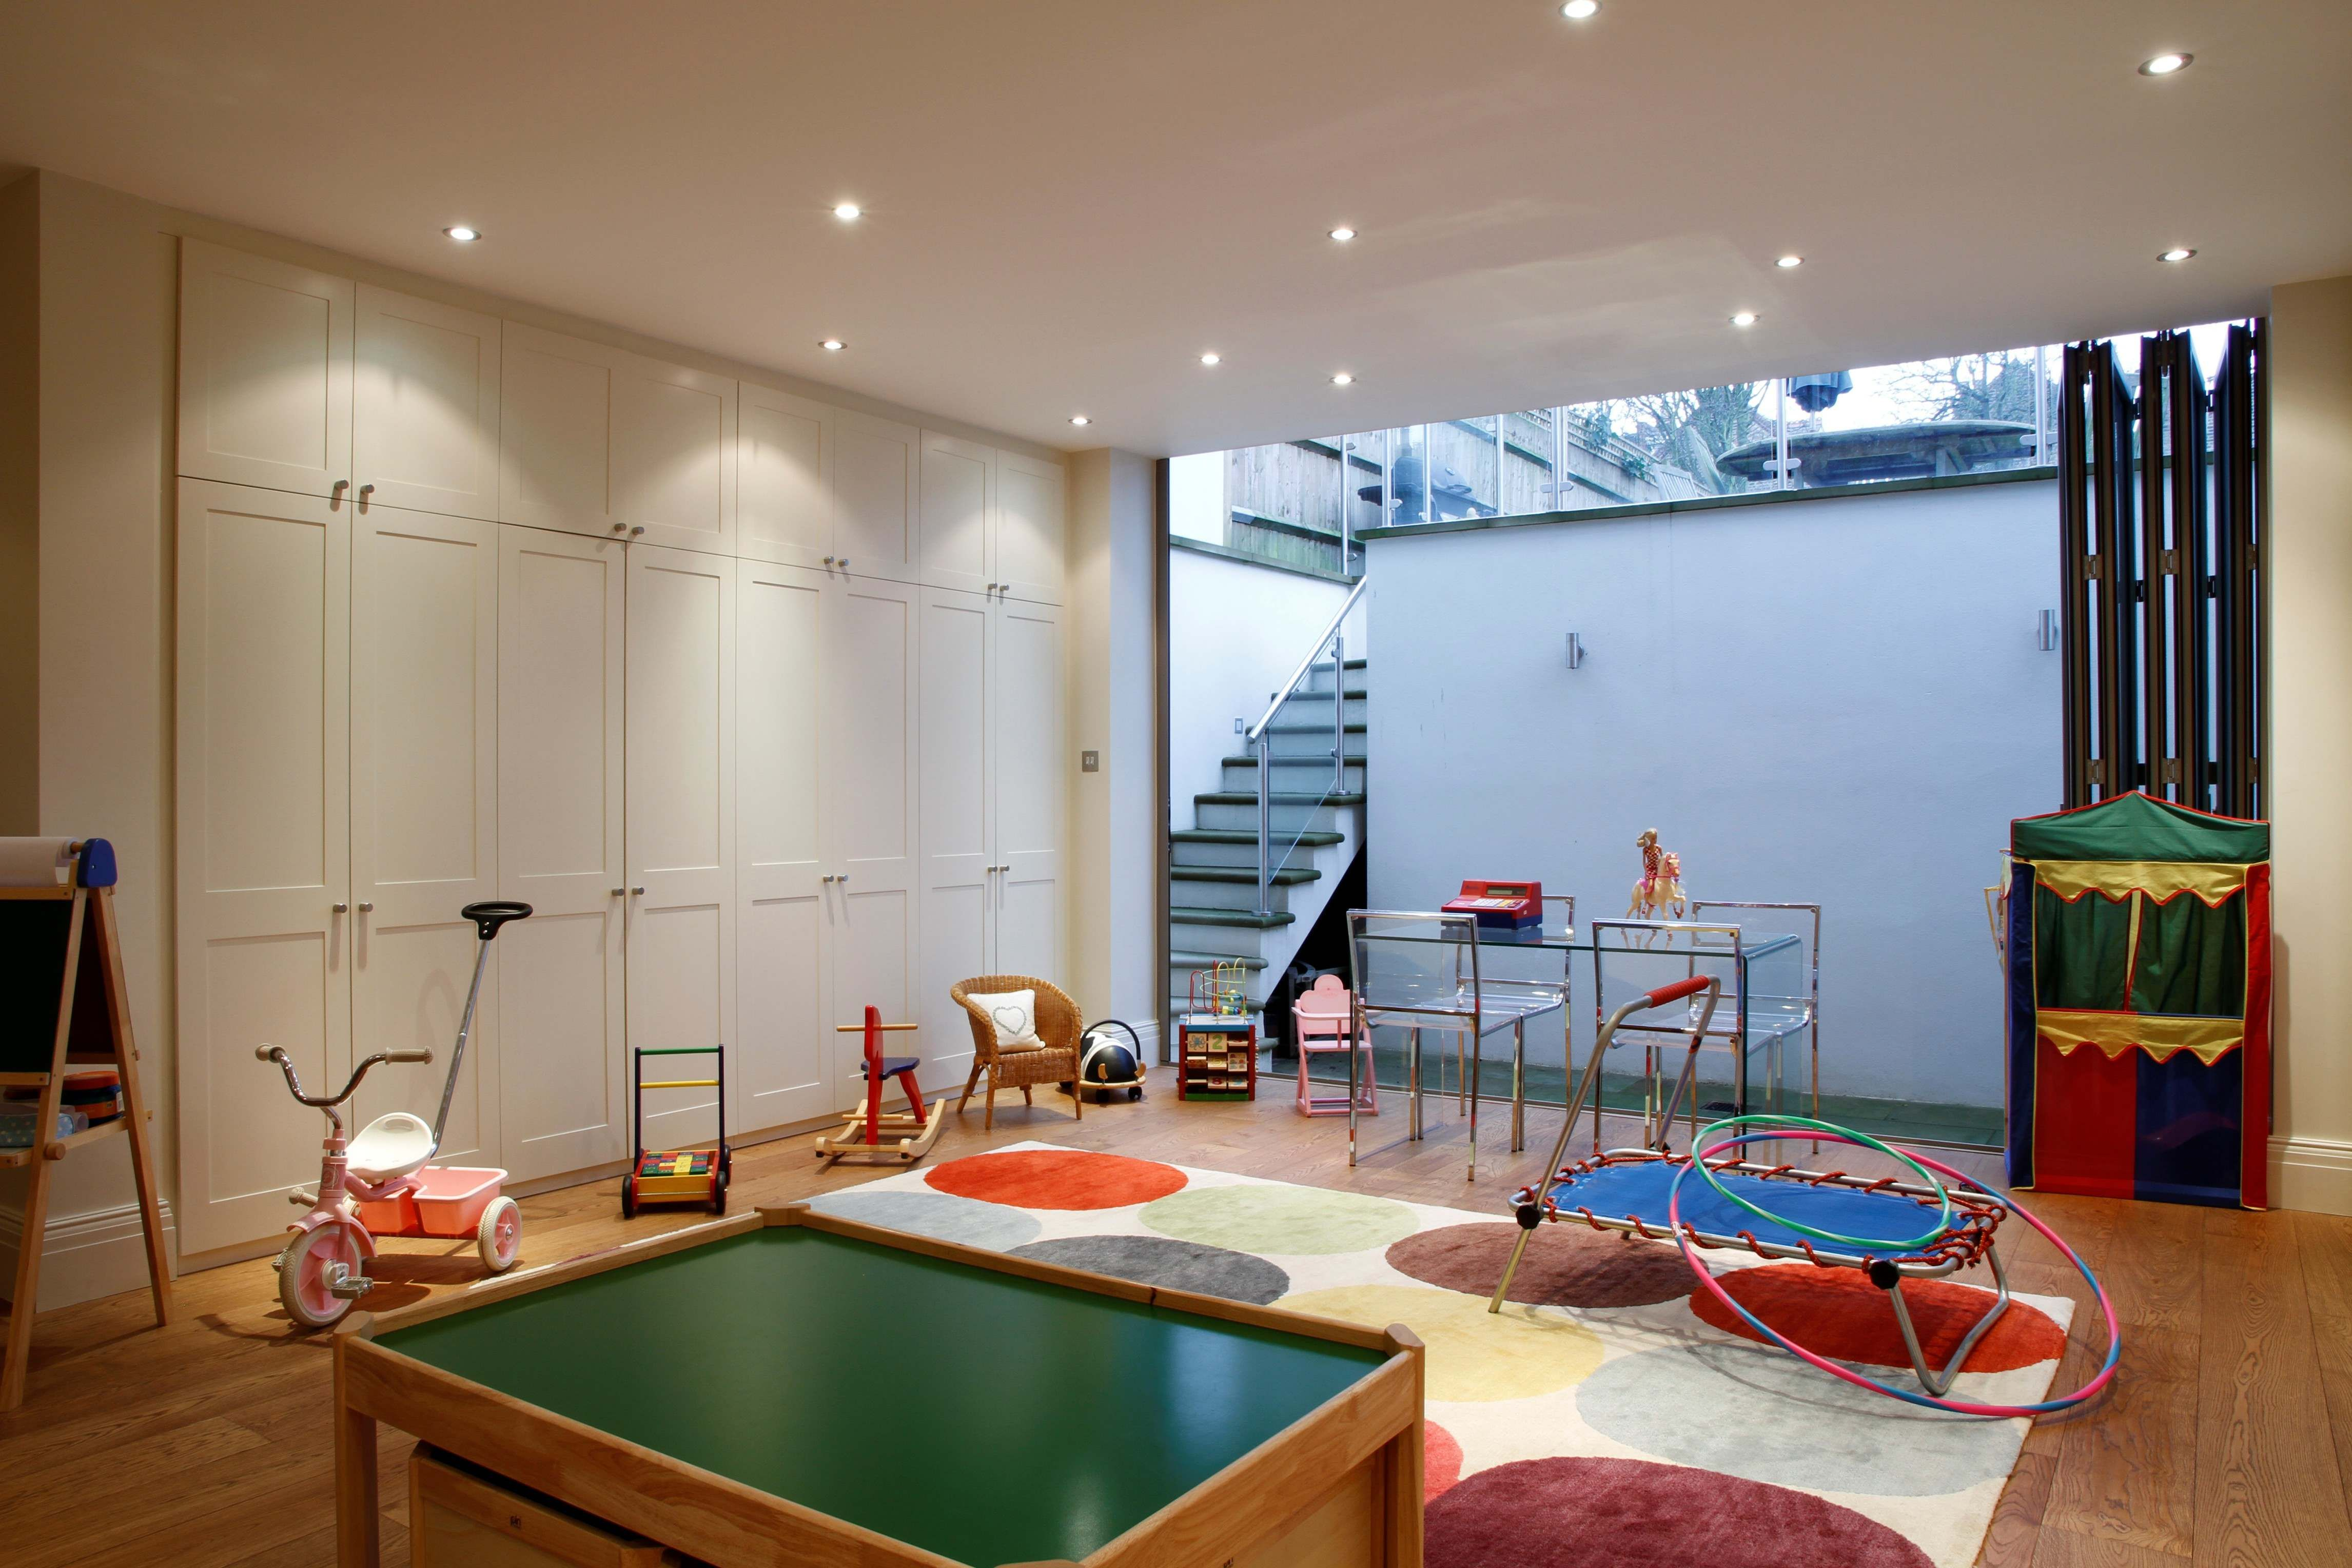 basement playroom | kid spaces | pinterest | keller ideen, keller